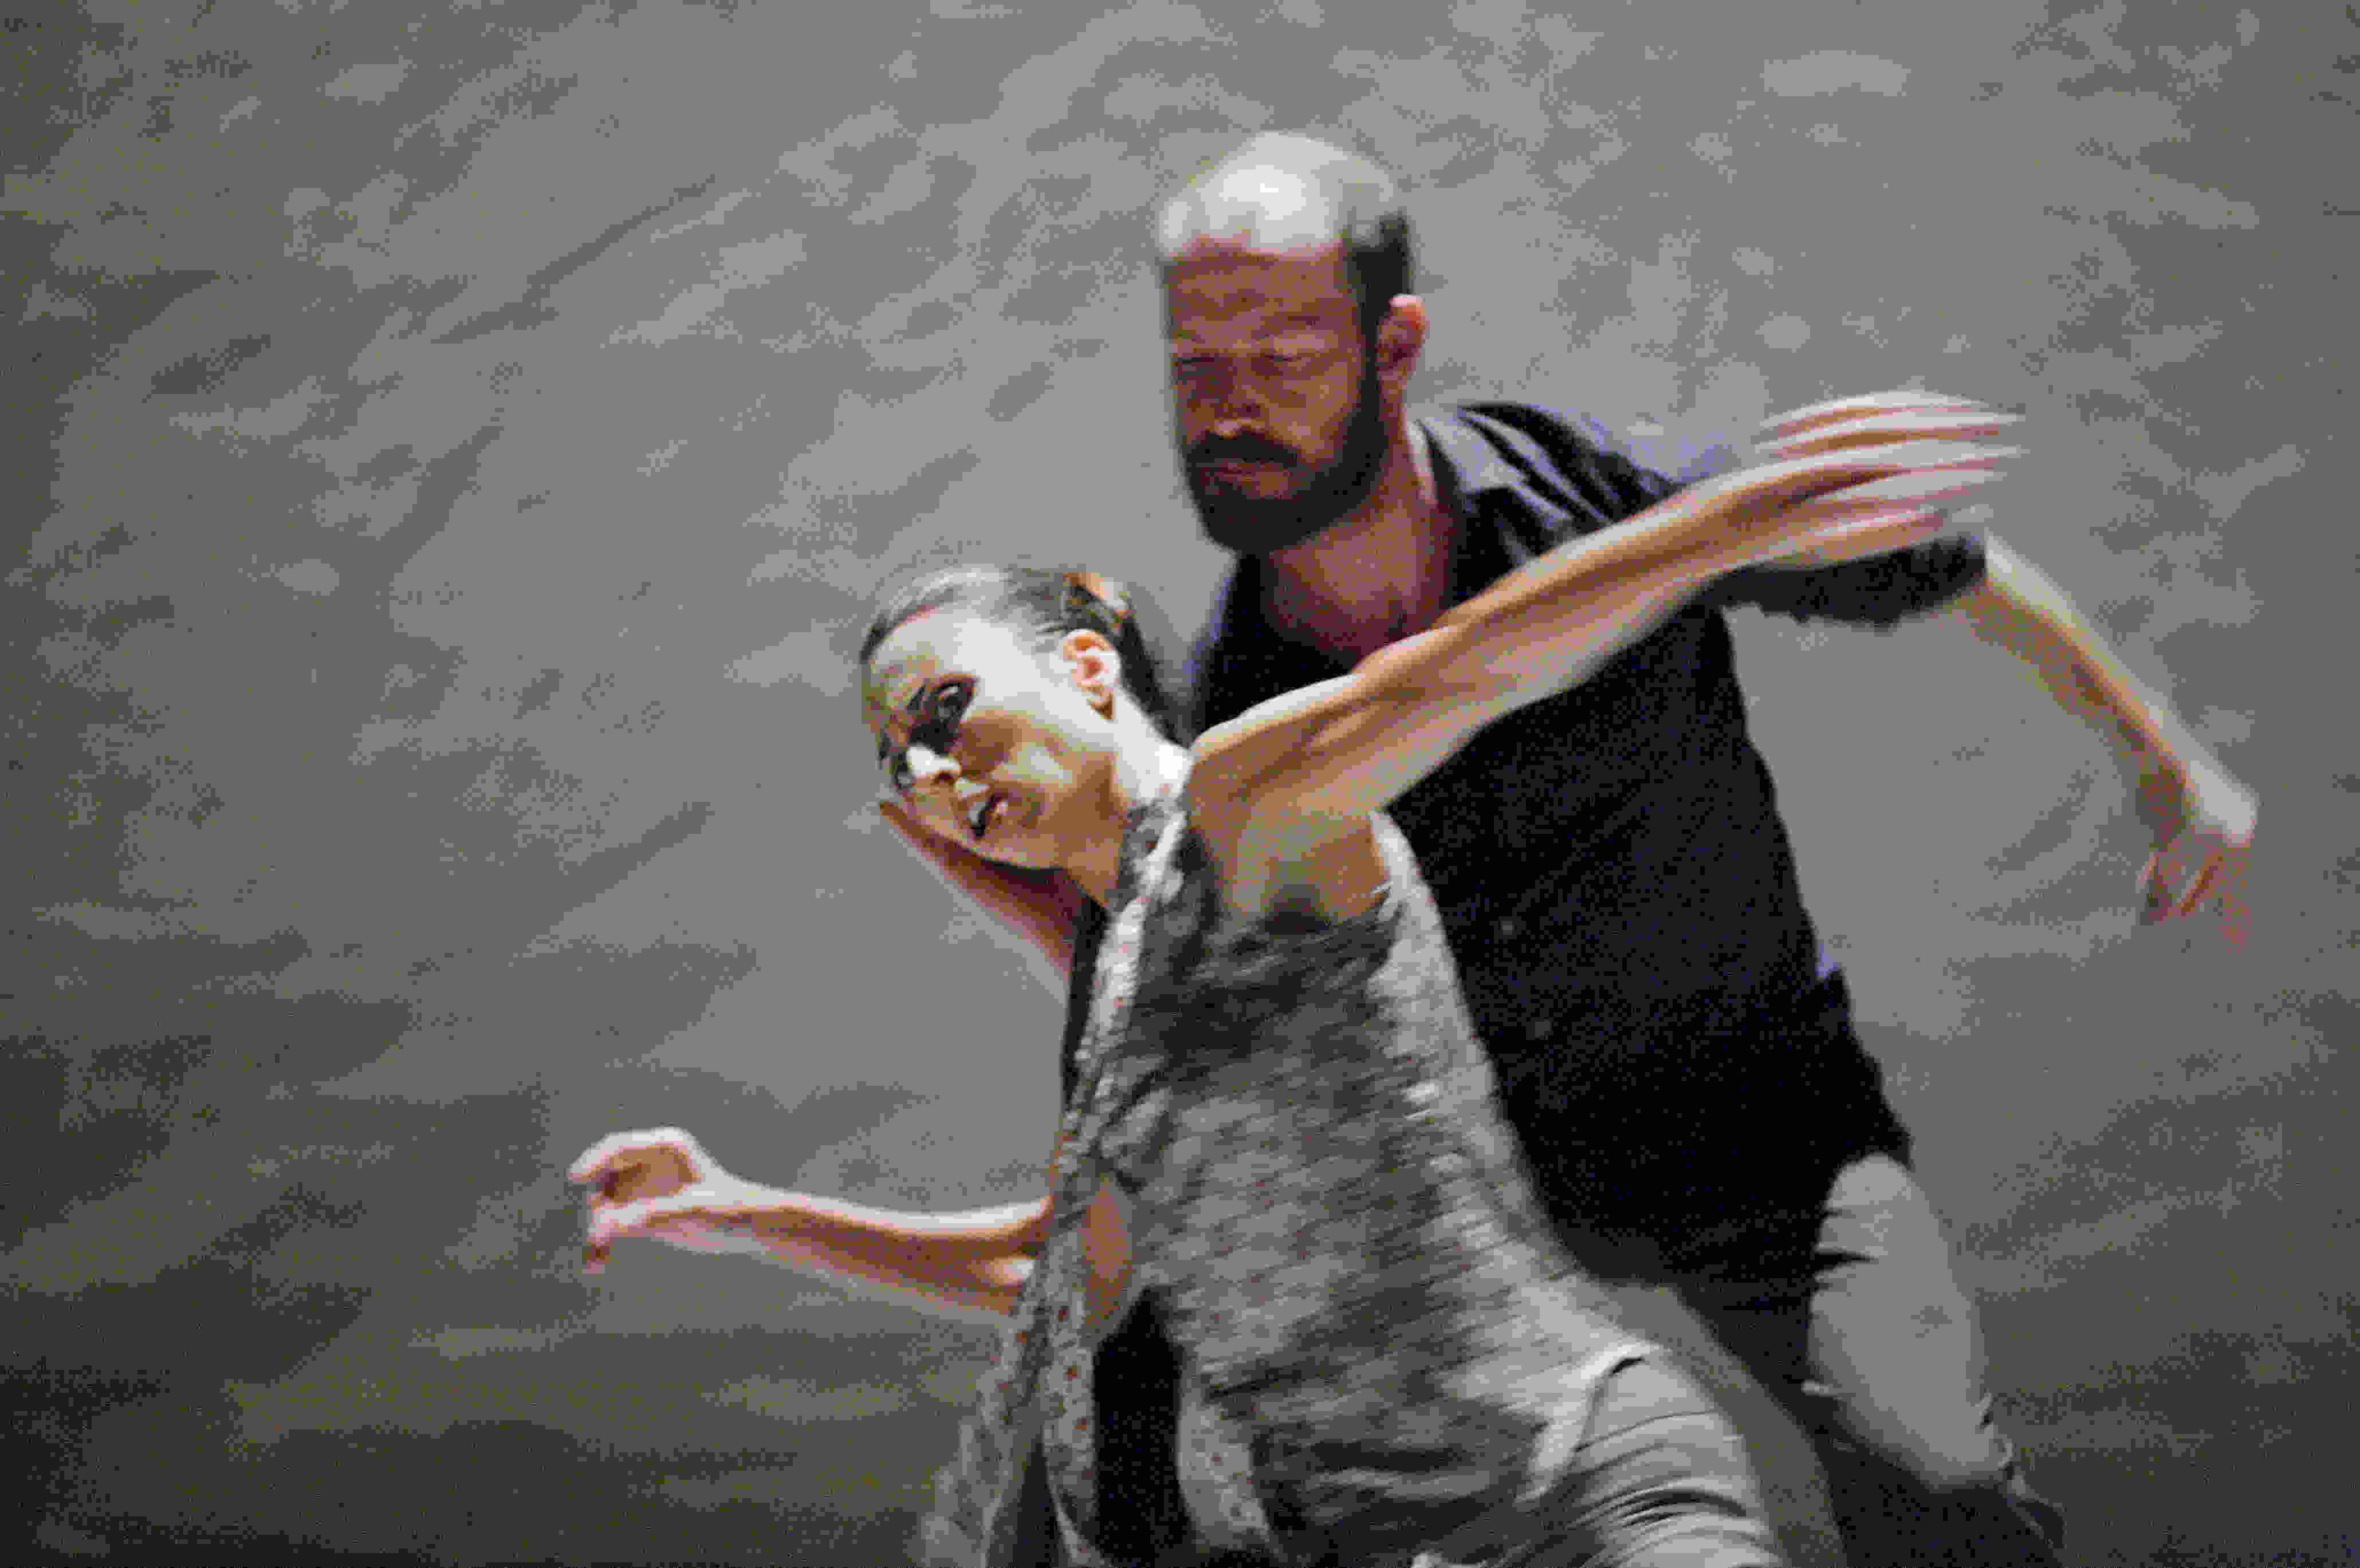 Eric Beauchesne as Prospero and Sandra Marín Garcia as Ariel in The Tempest Replica